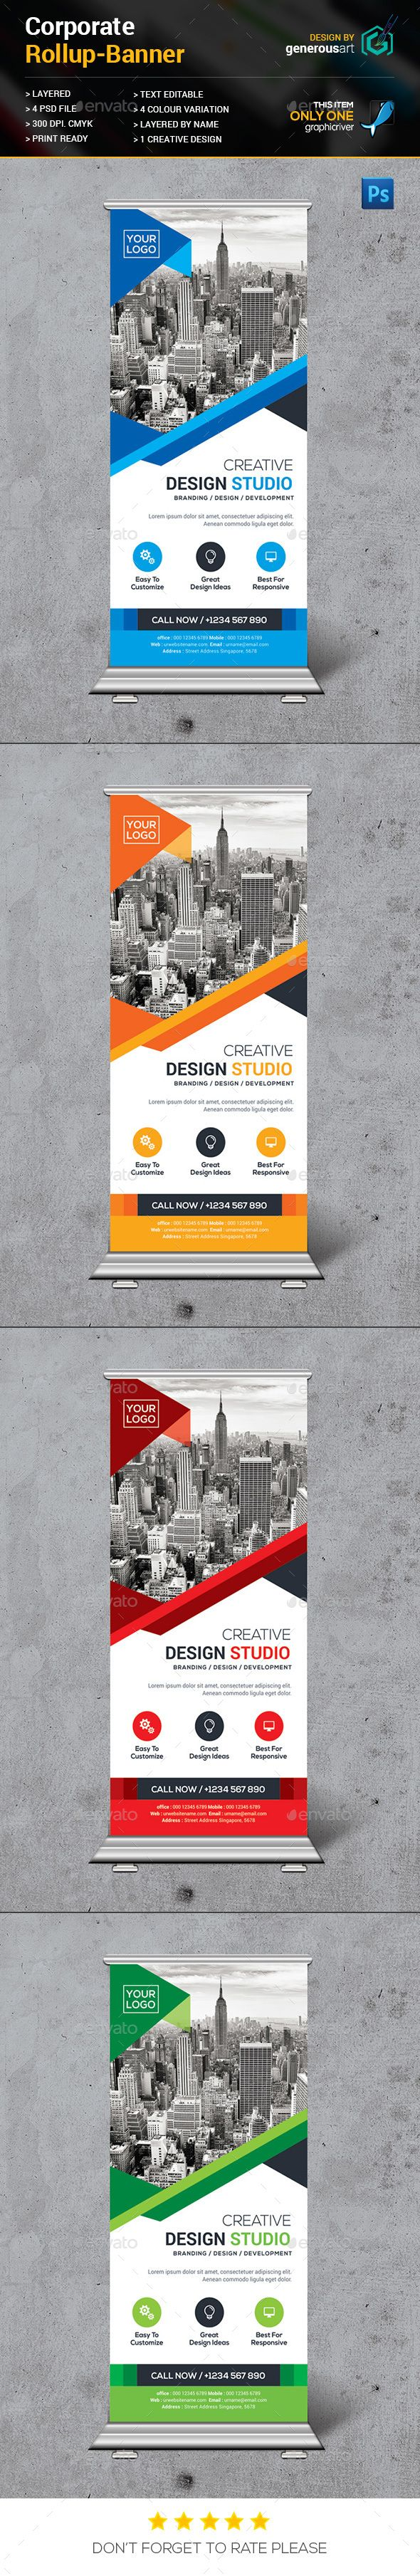 Poster design rates - Rollup Banner